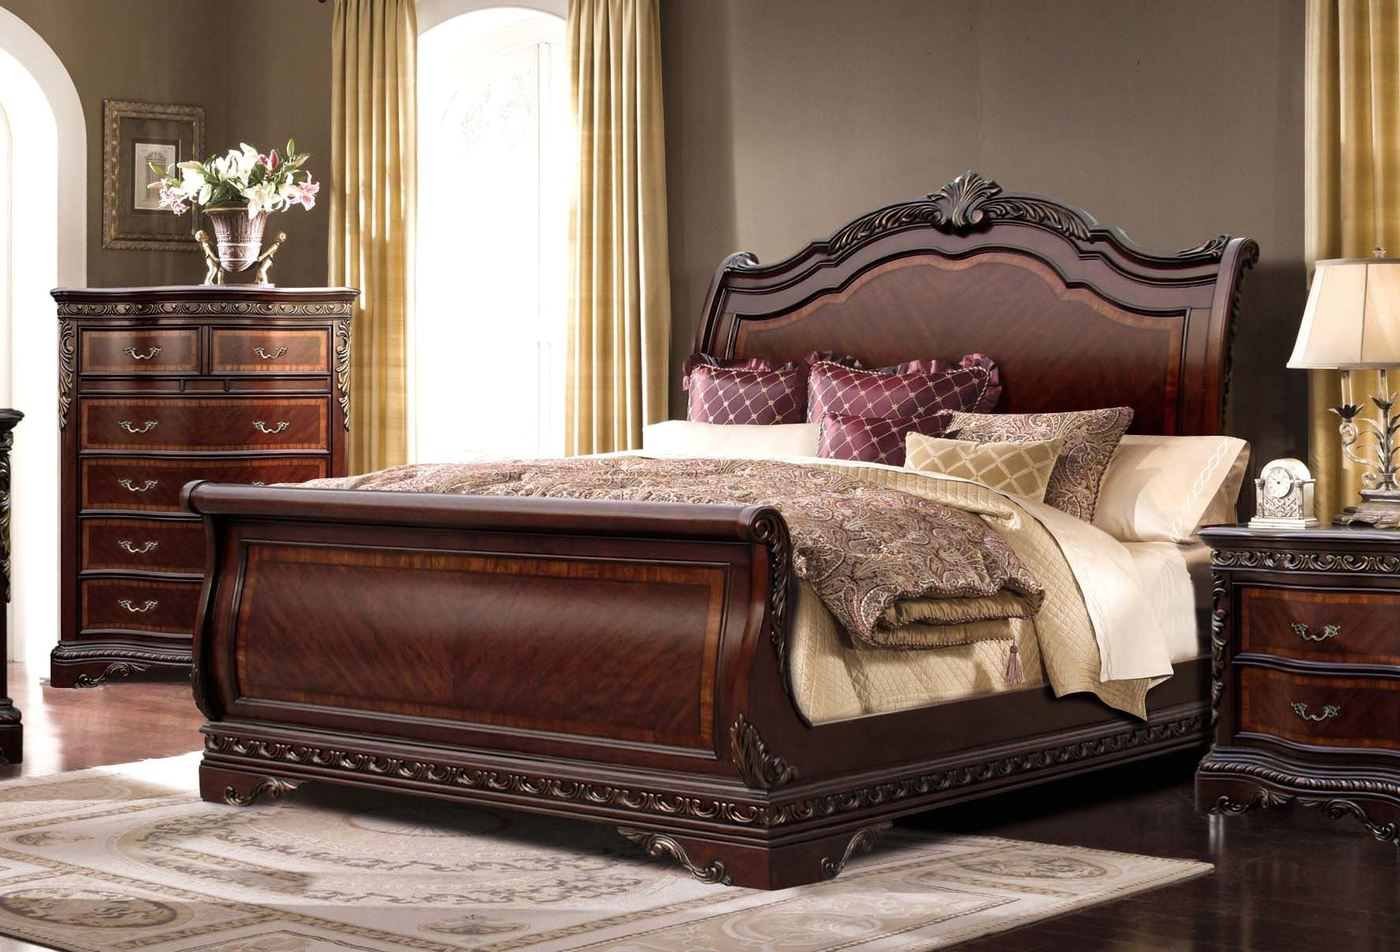 Bella Traditional Ornate King Sleigh Bed With Mahogany Finish